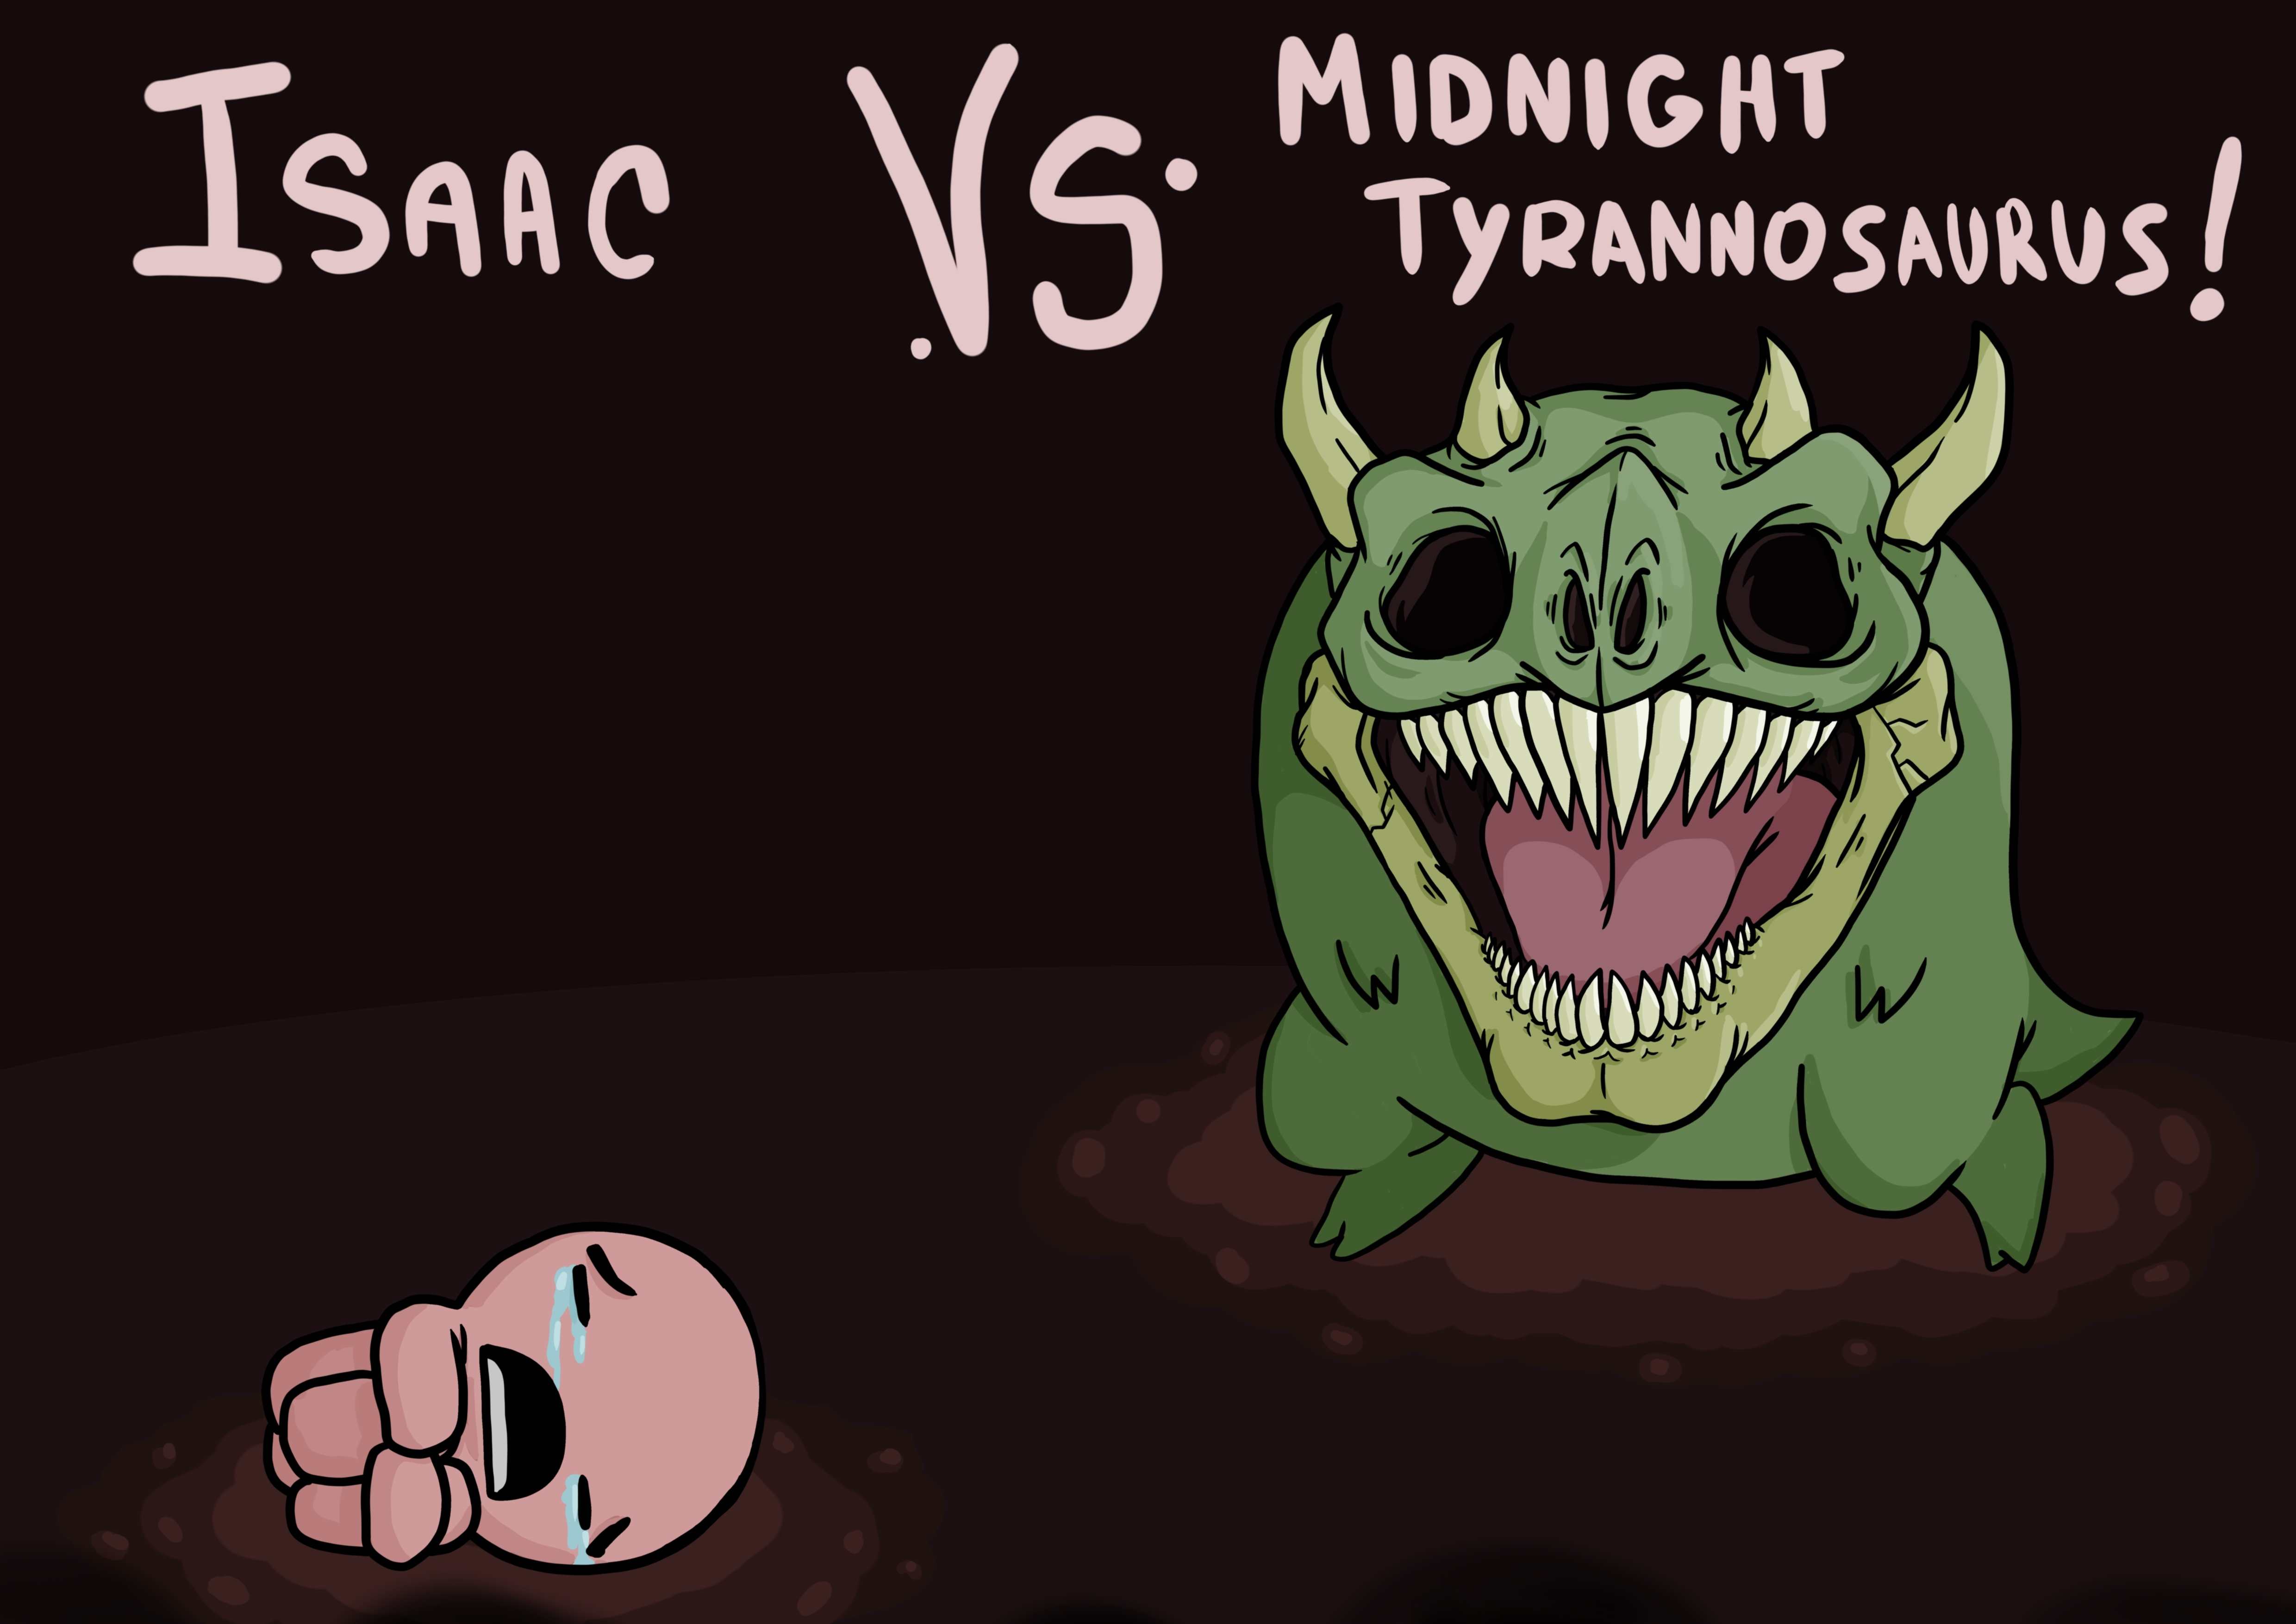 Isaac's judgement day has come